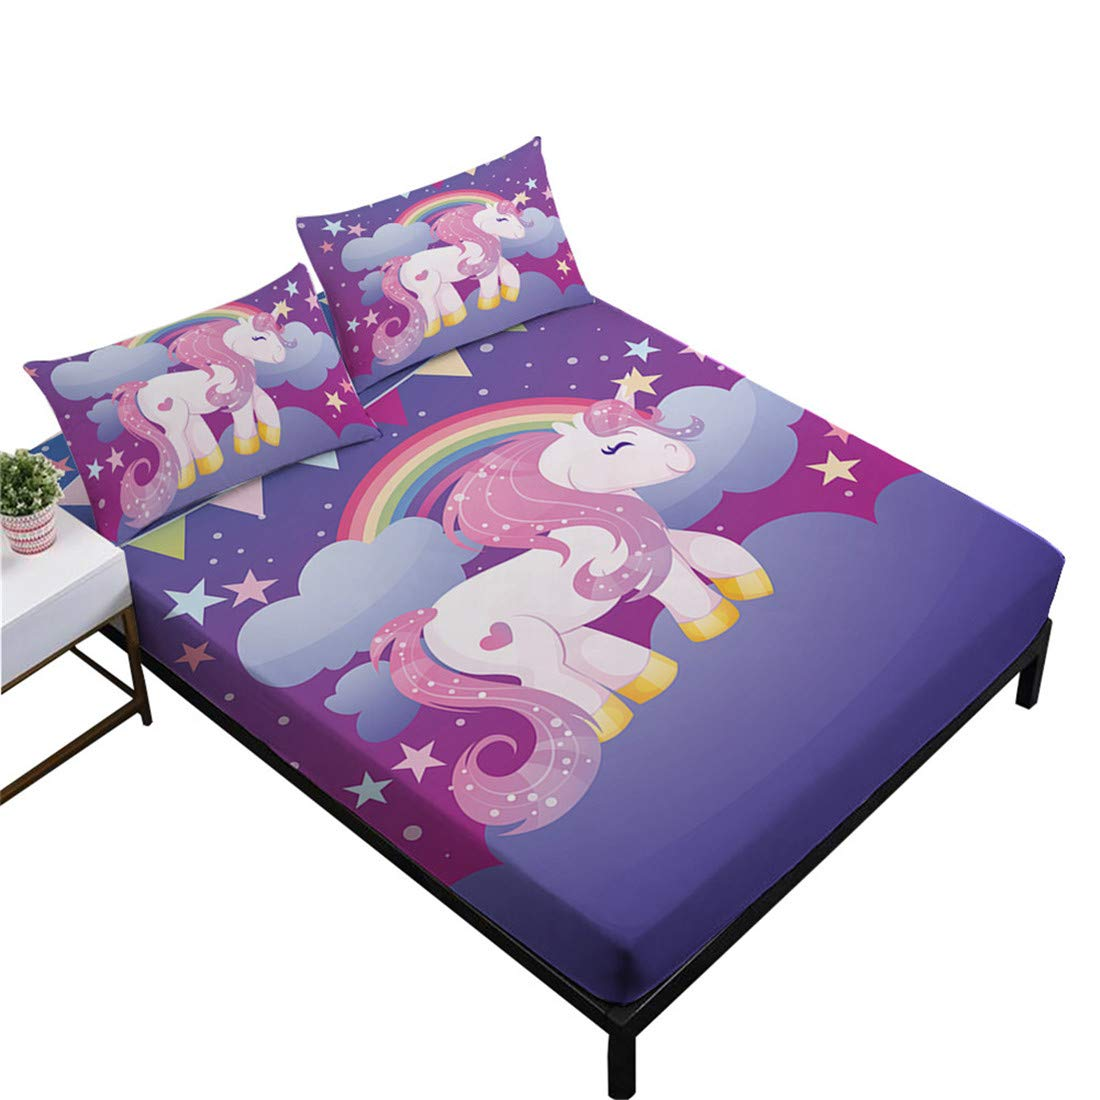 Oliven 3D Cartoon Unicorn Sheets Twin Size,Fitted Sheets Set Twin Size,Bed Sheets Twin Purple Bedding Set 3 Pieces Girls Gift Home Decor